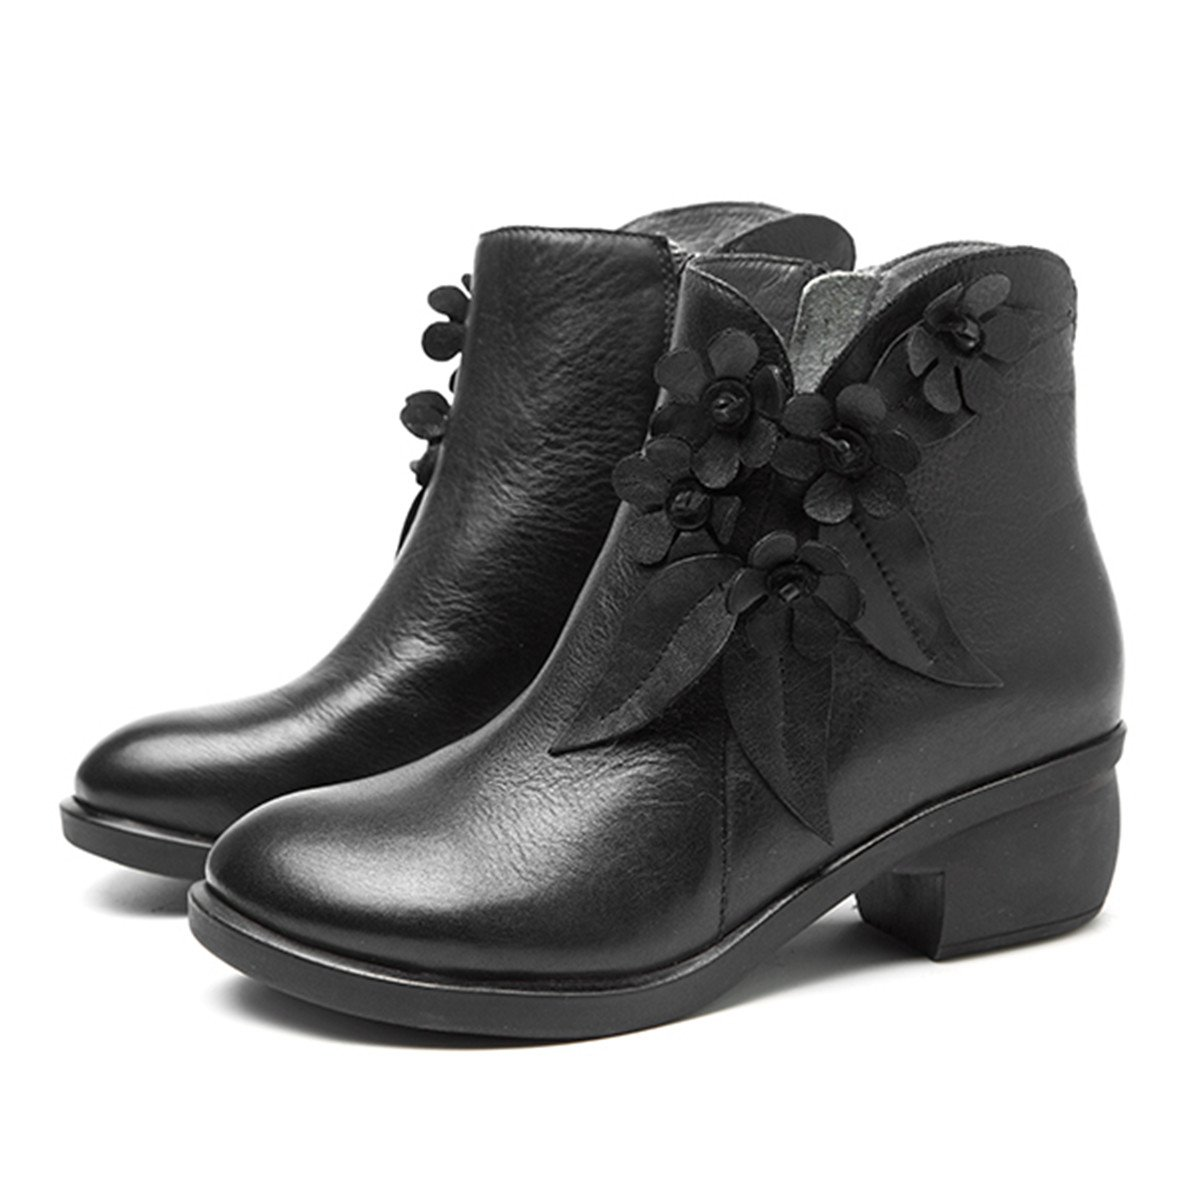 Socofy Leather Ankle Bootie, Women's Vintage Handmade Fashion Leather Boot Rose Floral Shoes Oxford Boots B077G54D6P 8 M US|Black Style 2